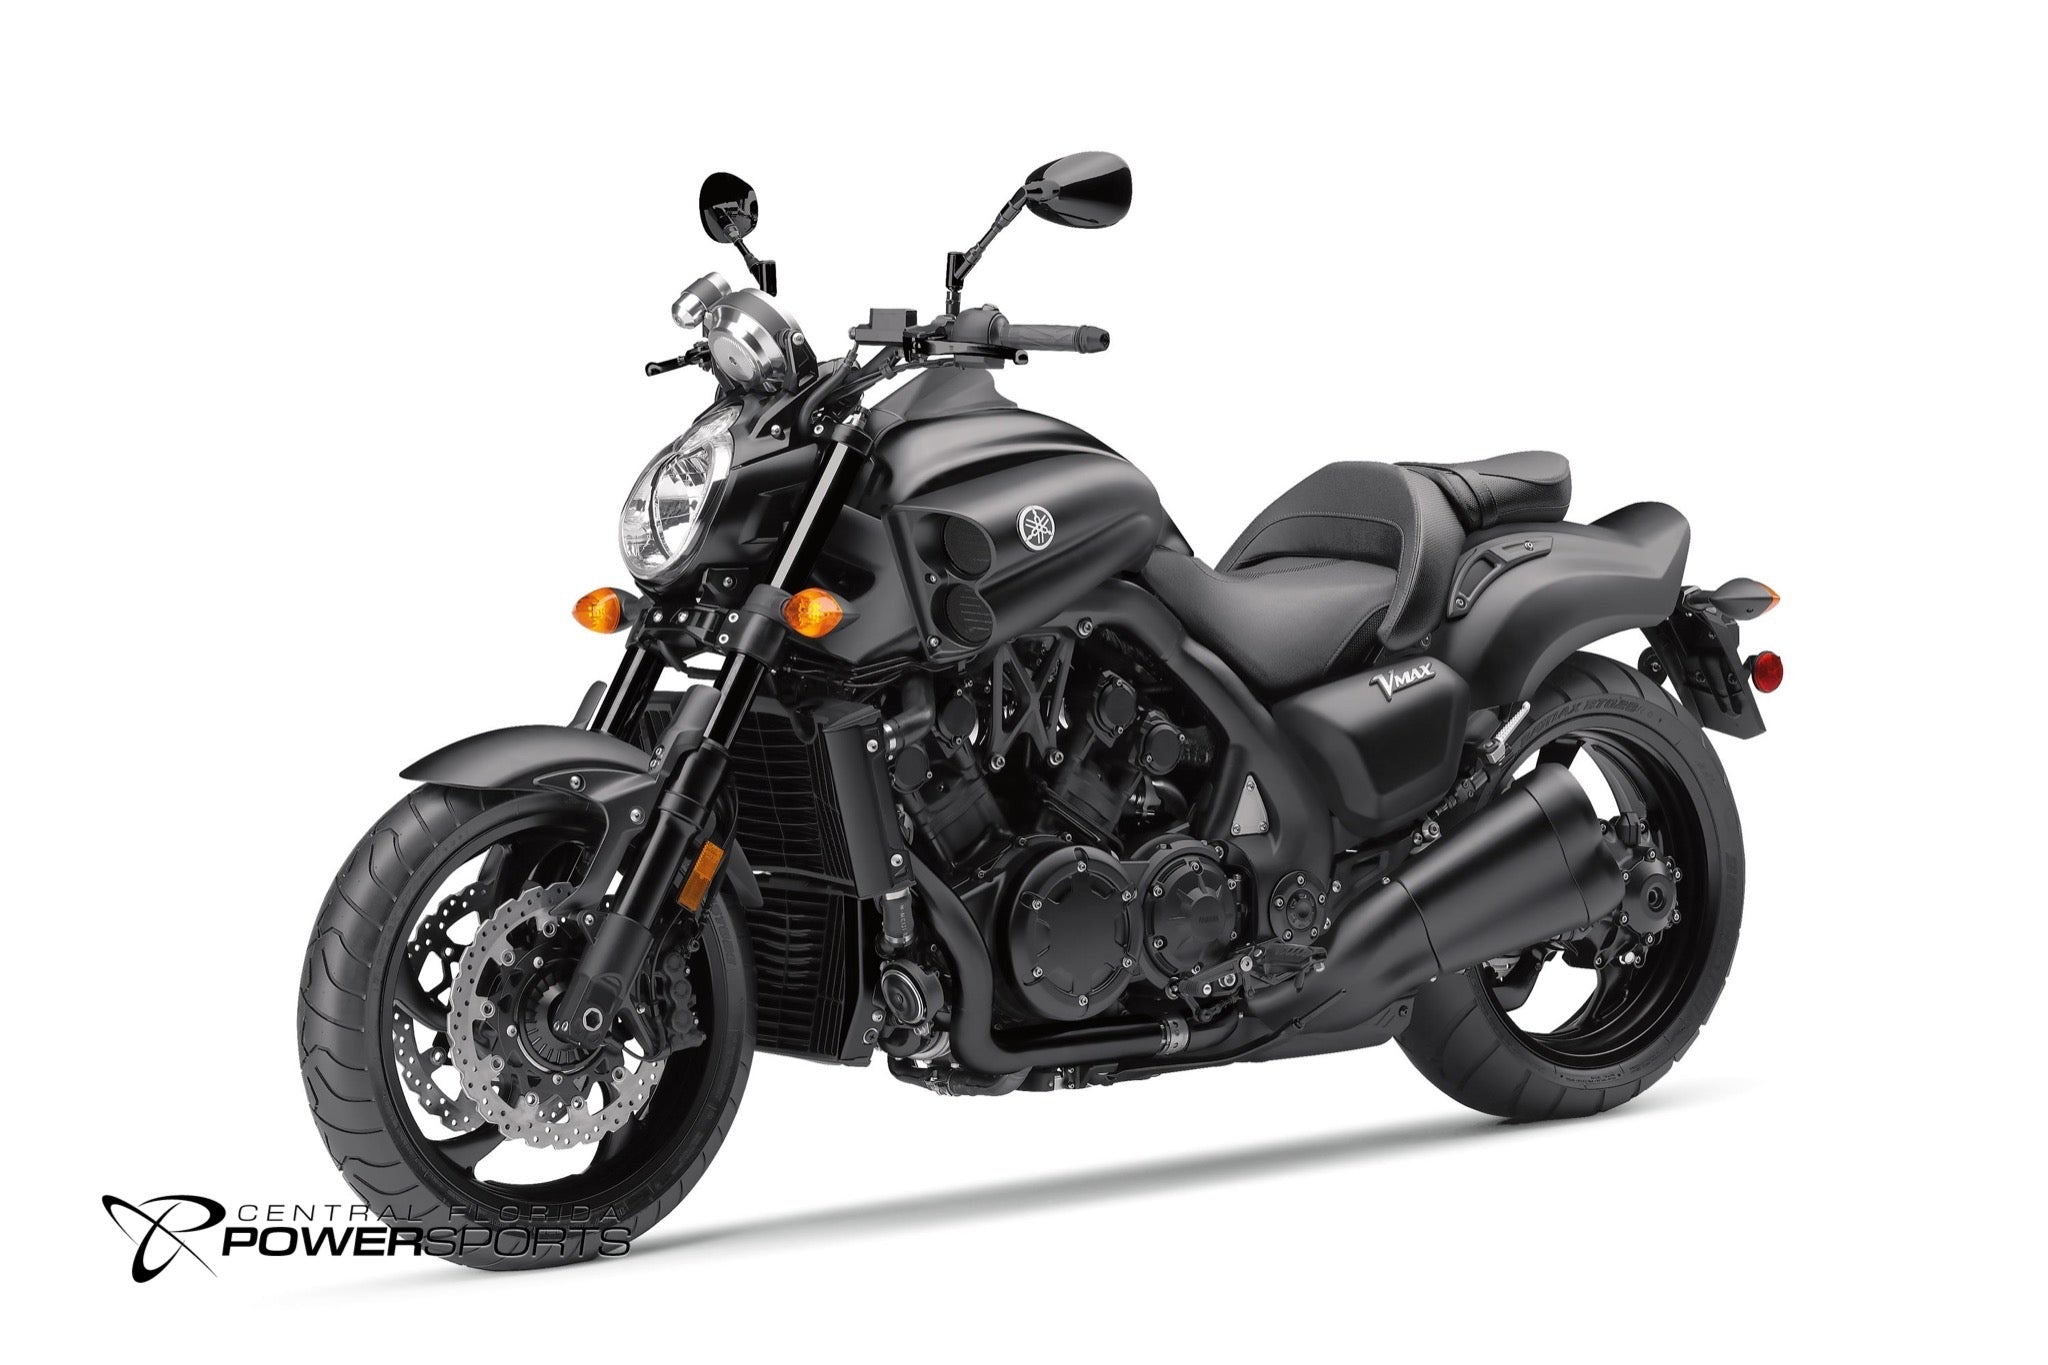 New 2018 Yamaha Vmax Cruiser Motorcycles For Sale